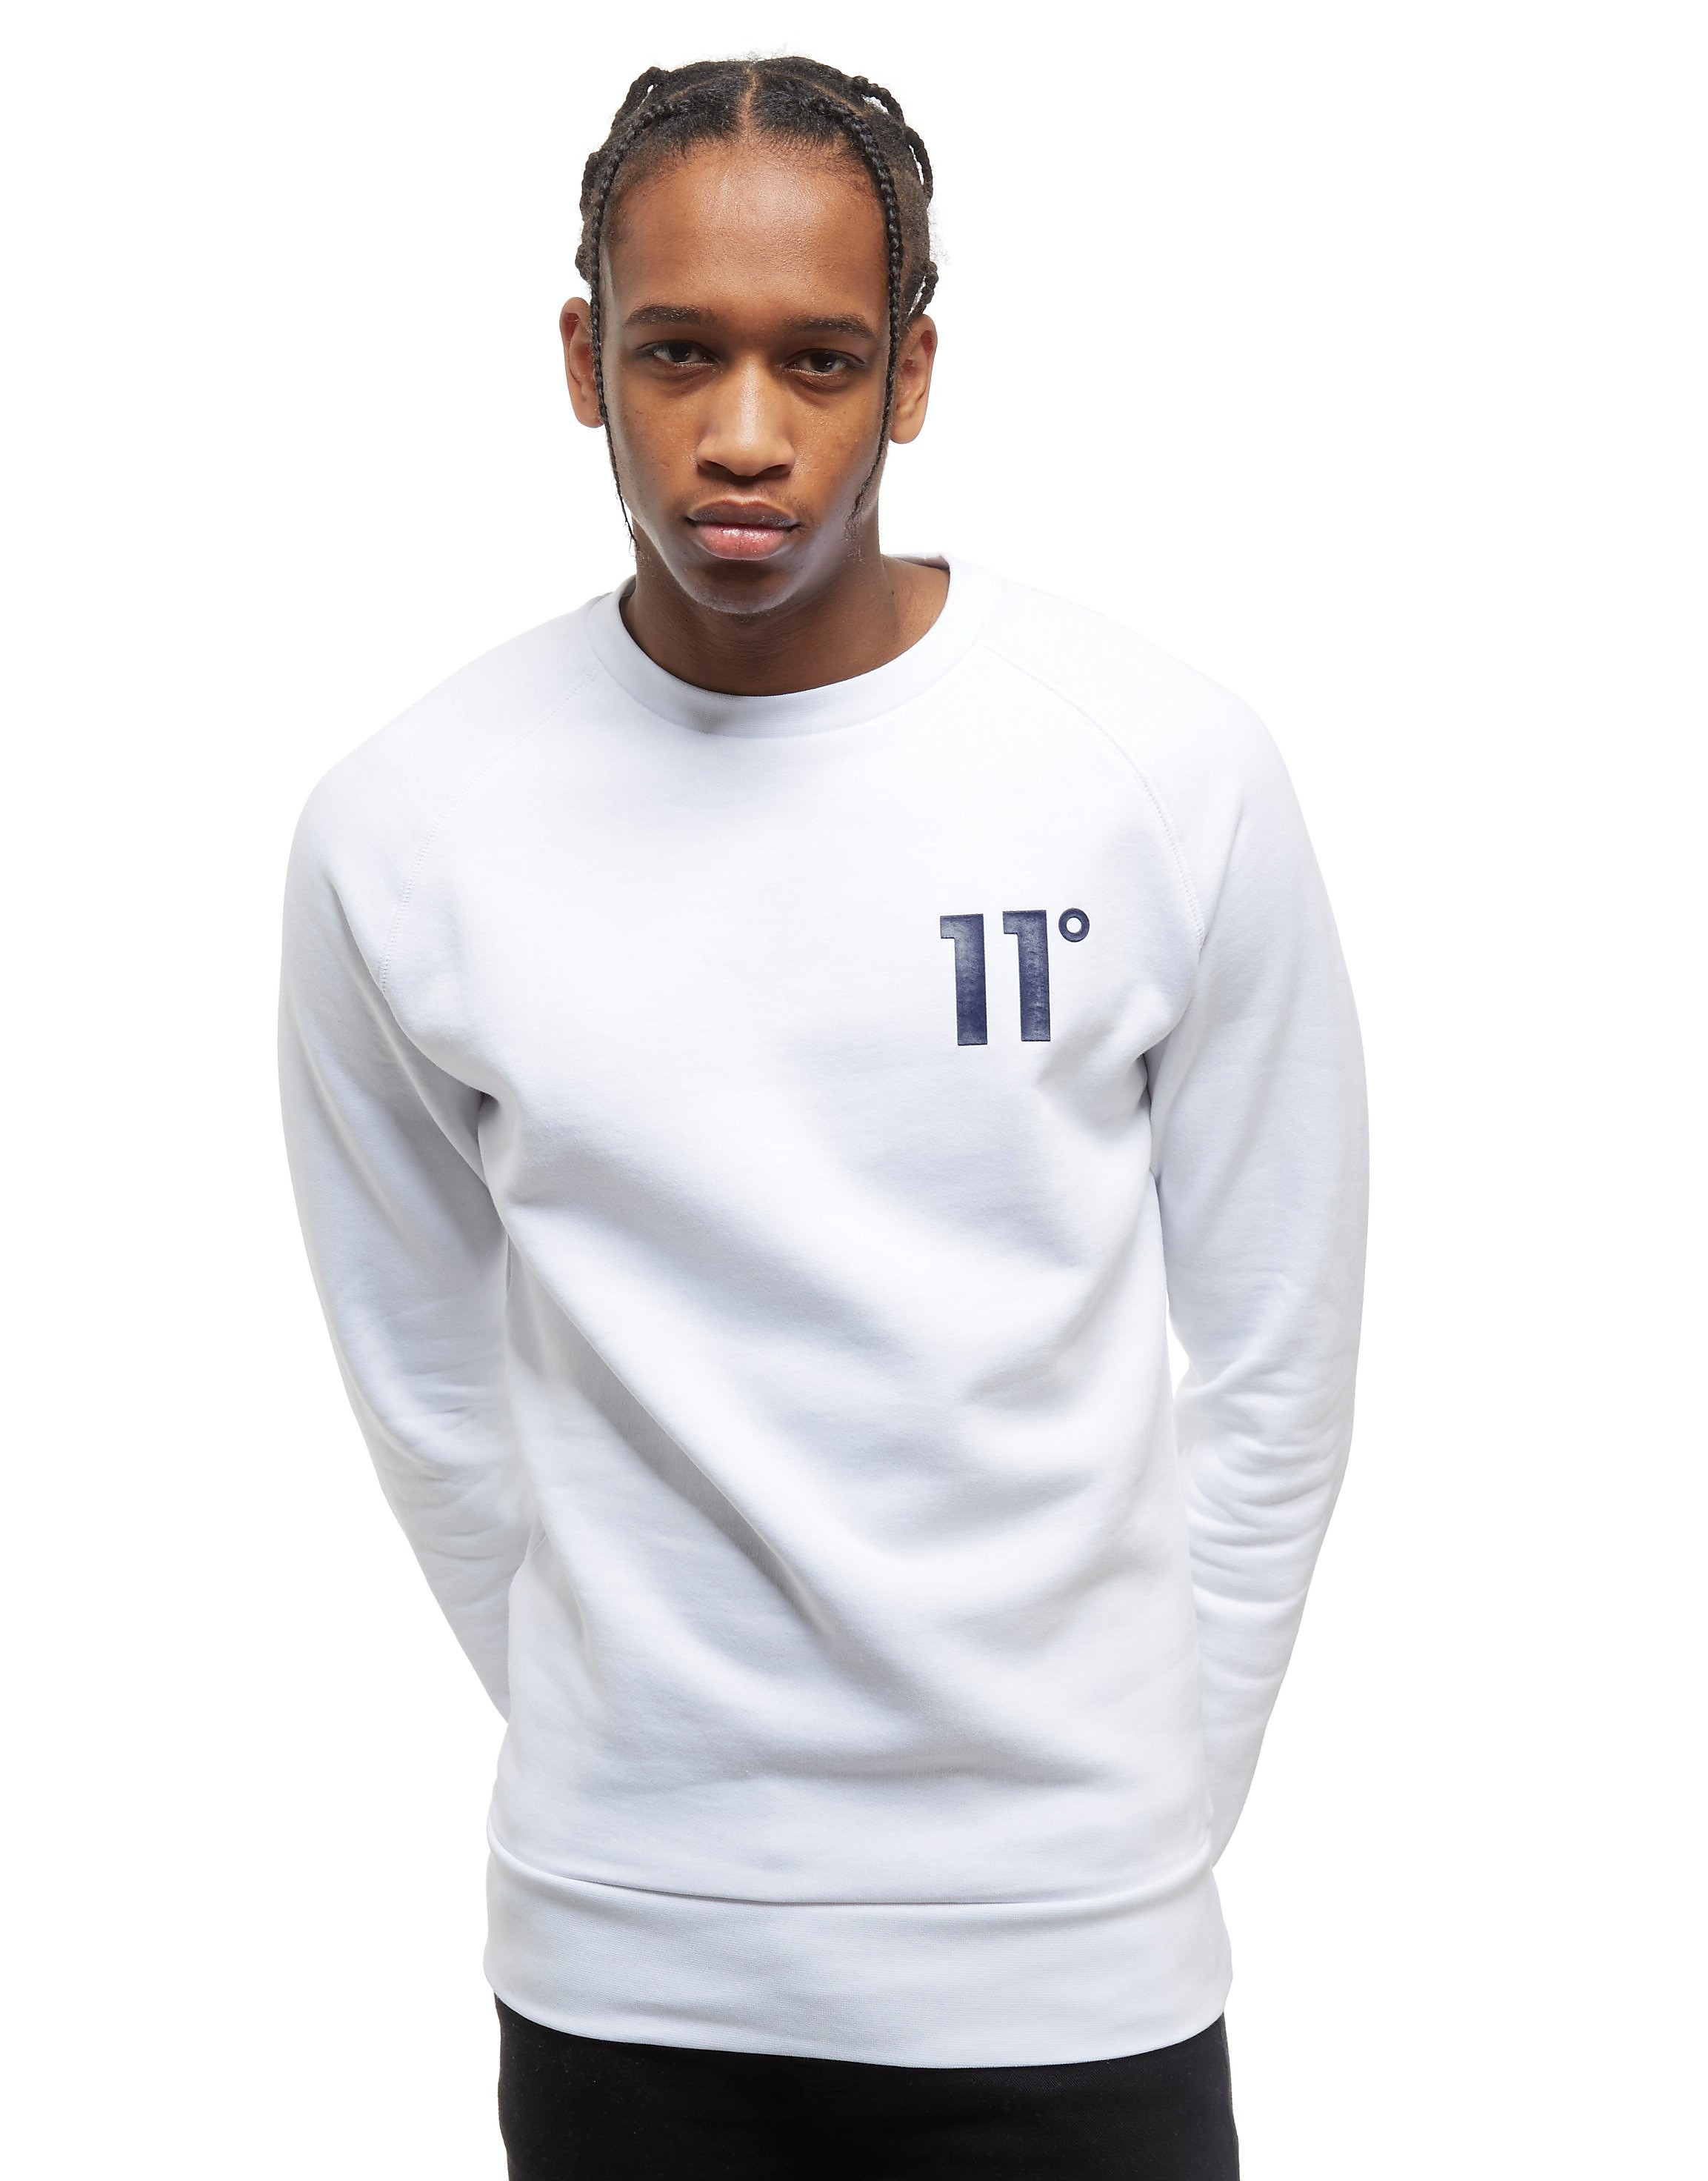 11 Degrees Crew Neck Sweatshirt